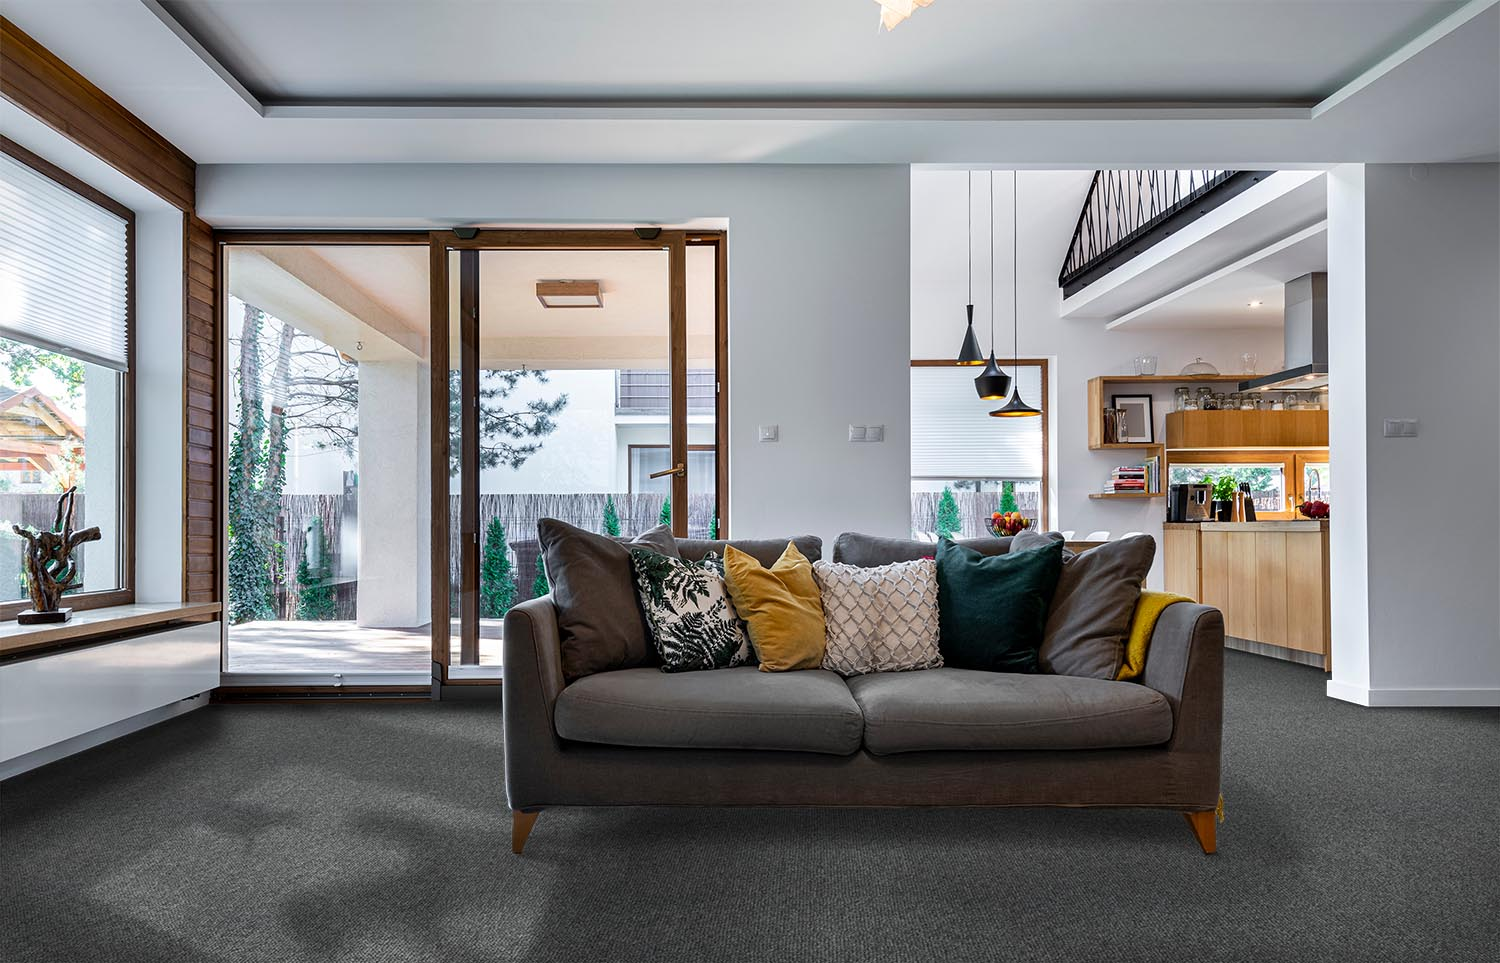 Inclusive - Mutual Embrace contemporary living room